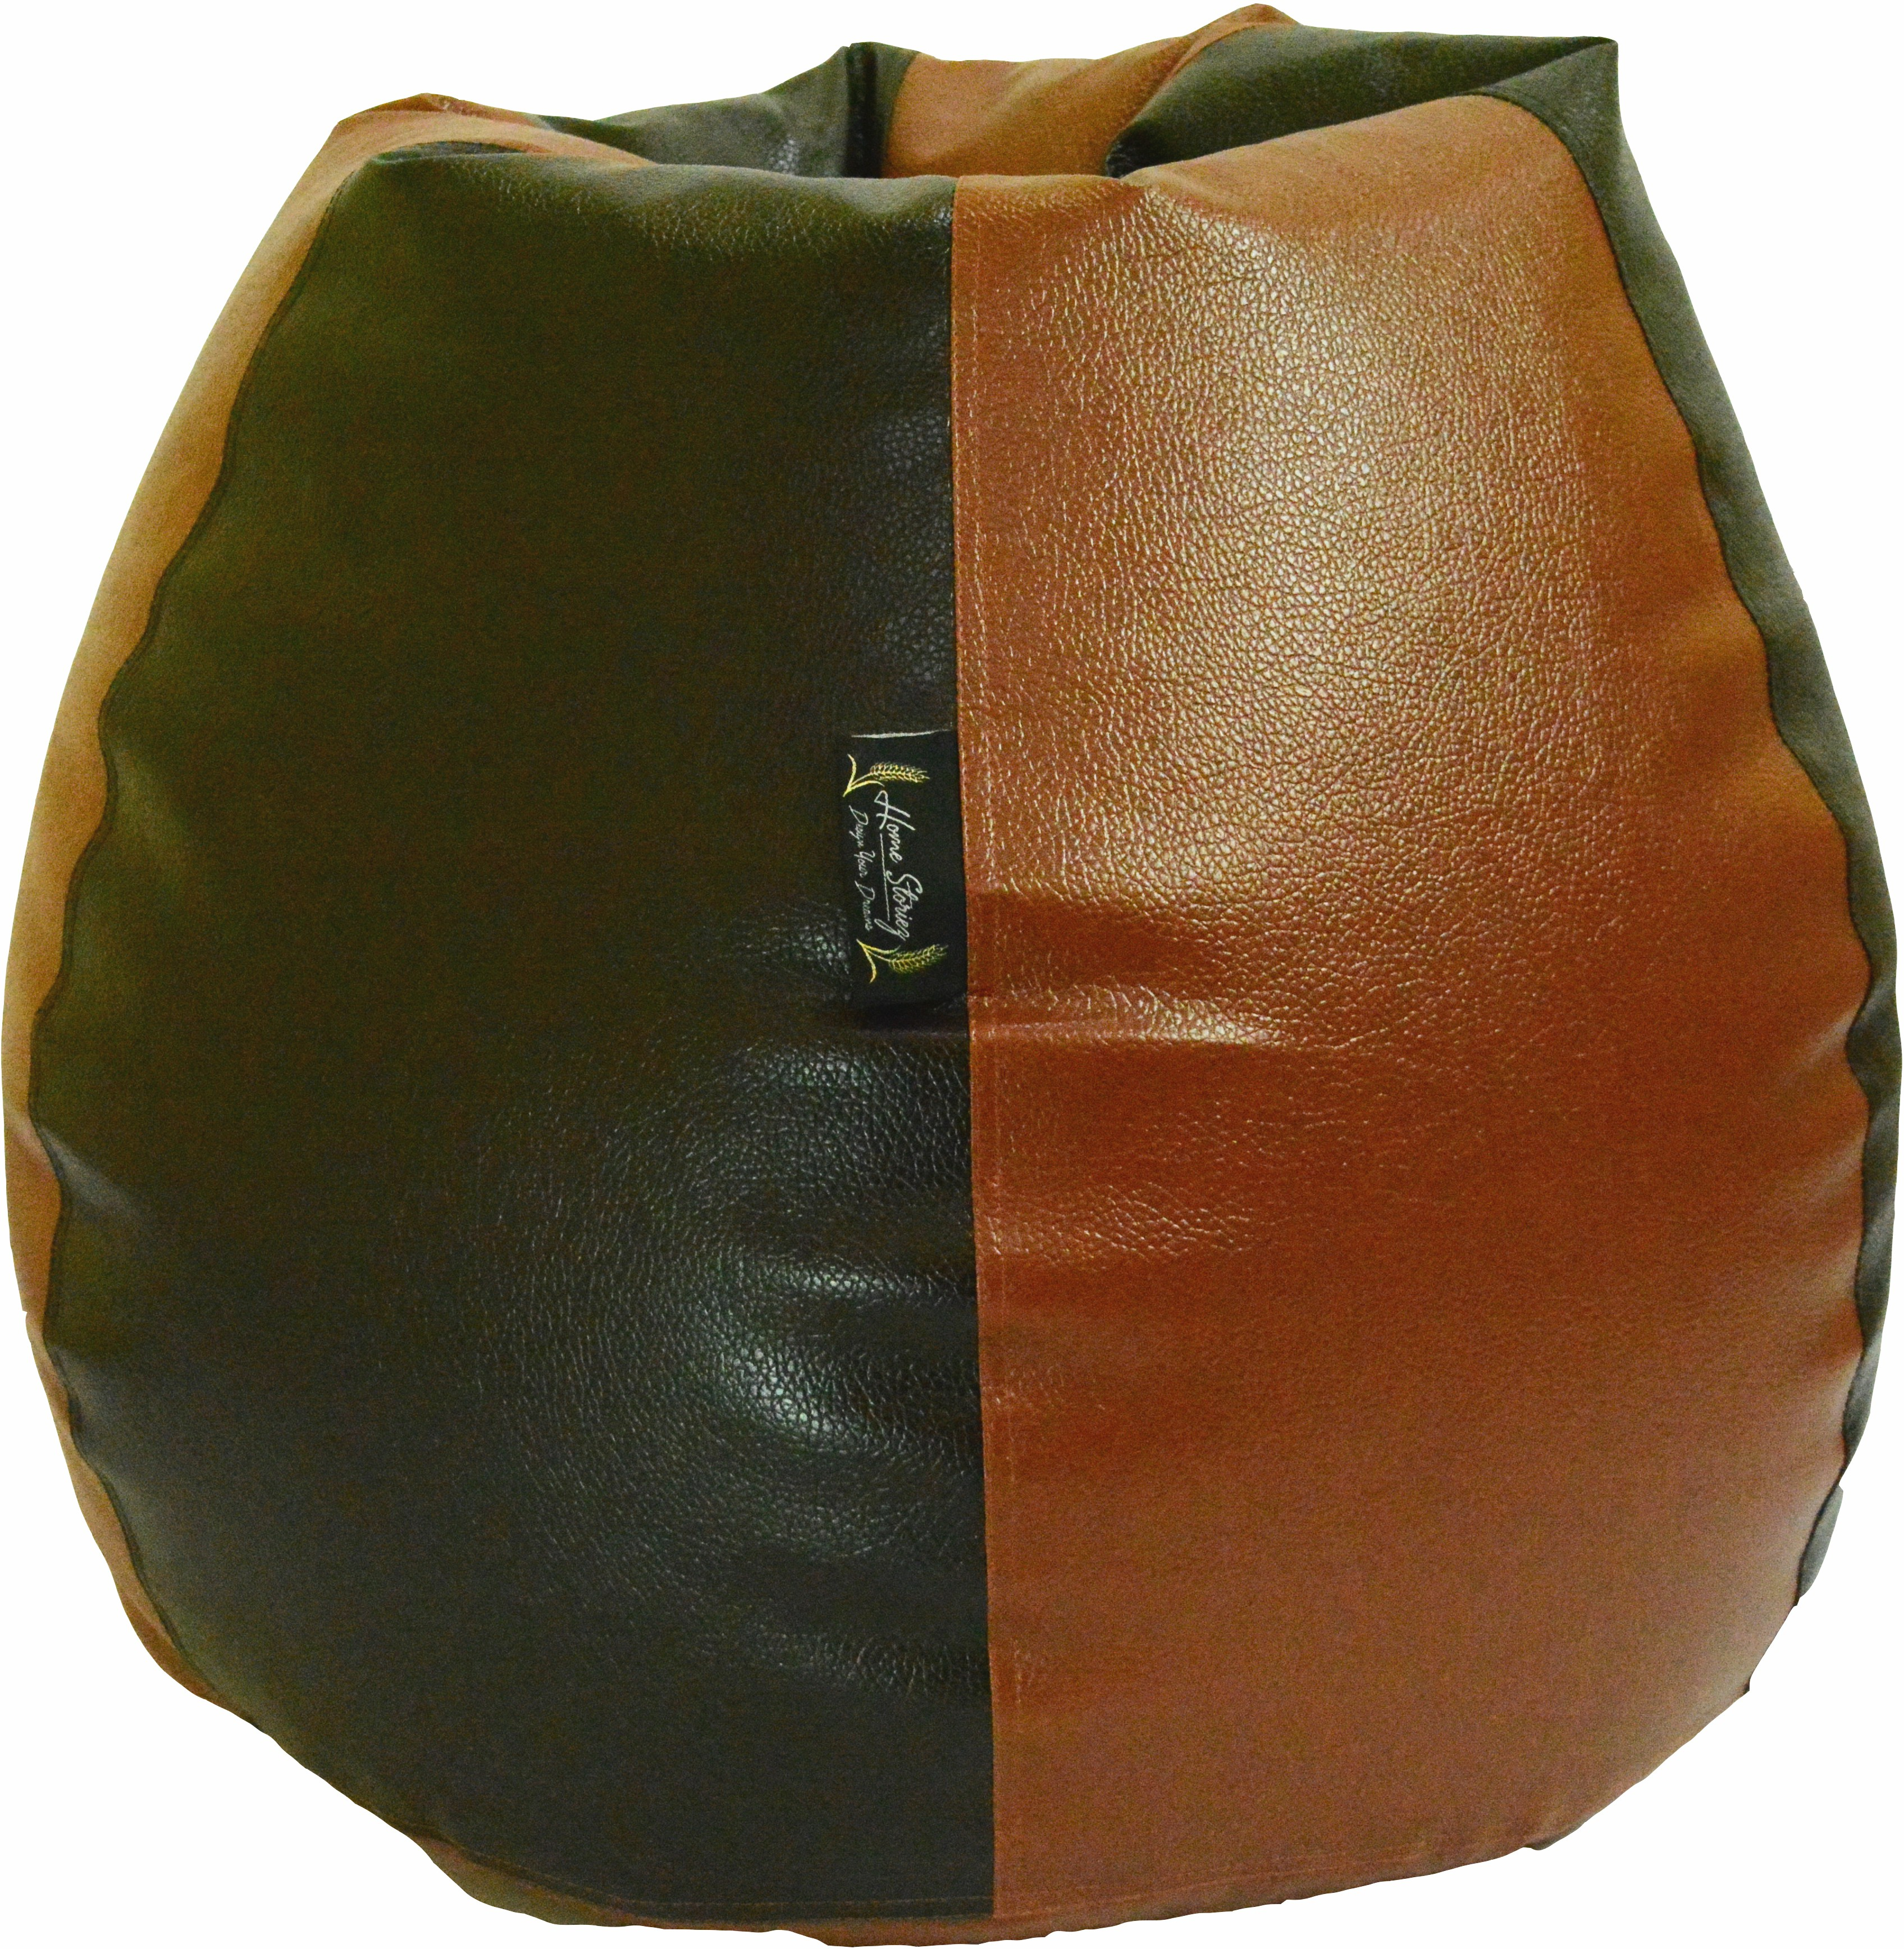 View Home Storiez XL Bean Bag Cover(Brown, Brown) Furniture (Home Storiez)